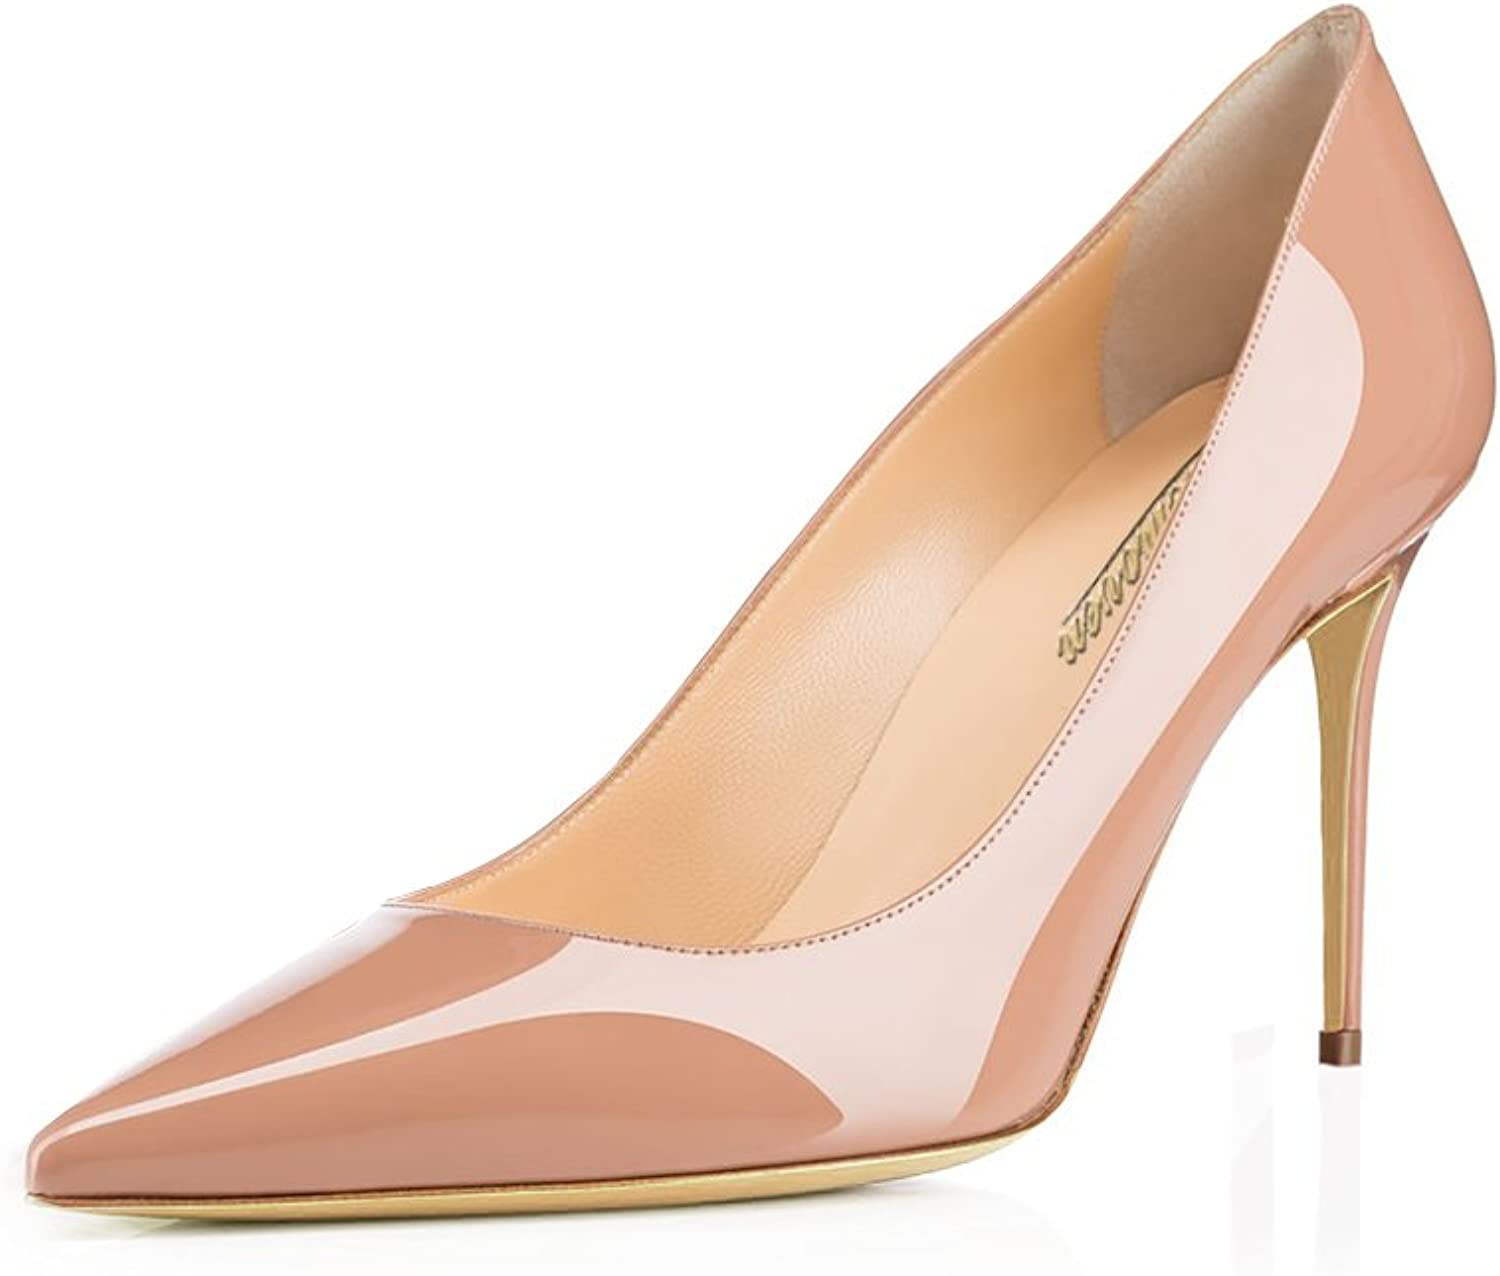 Modemoven Women's Pointed Toe Pumps Slip-on Office Business High Heels Sexy Stiletto shoes 85mm